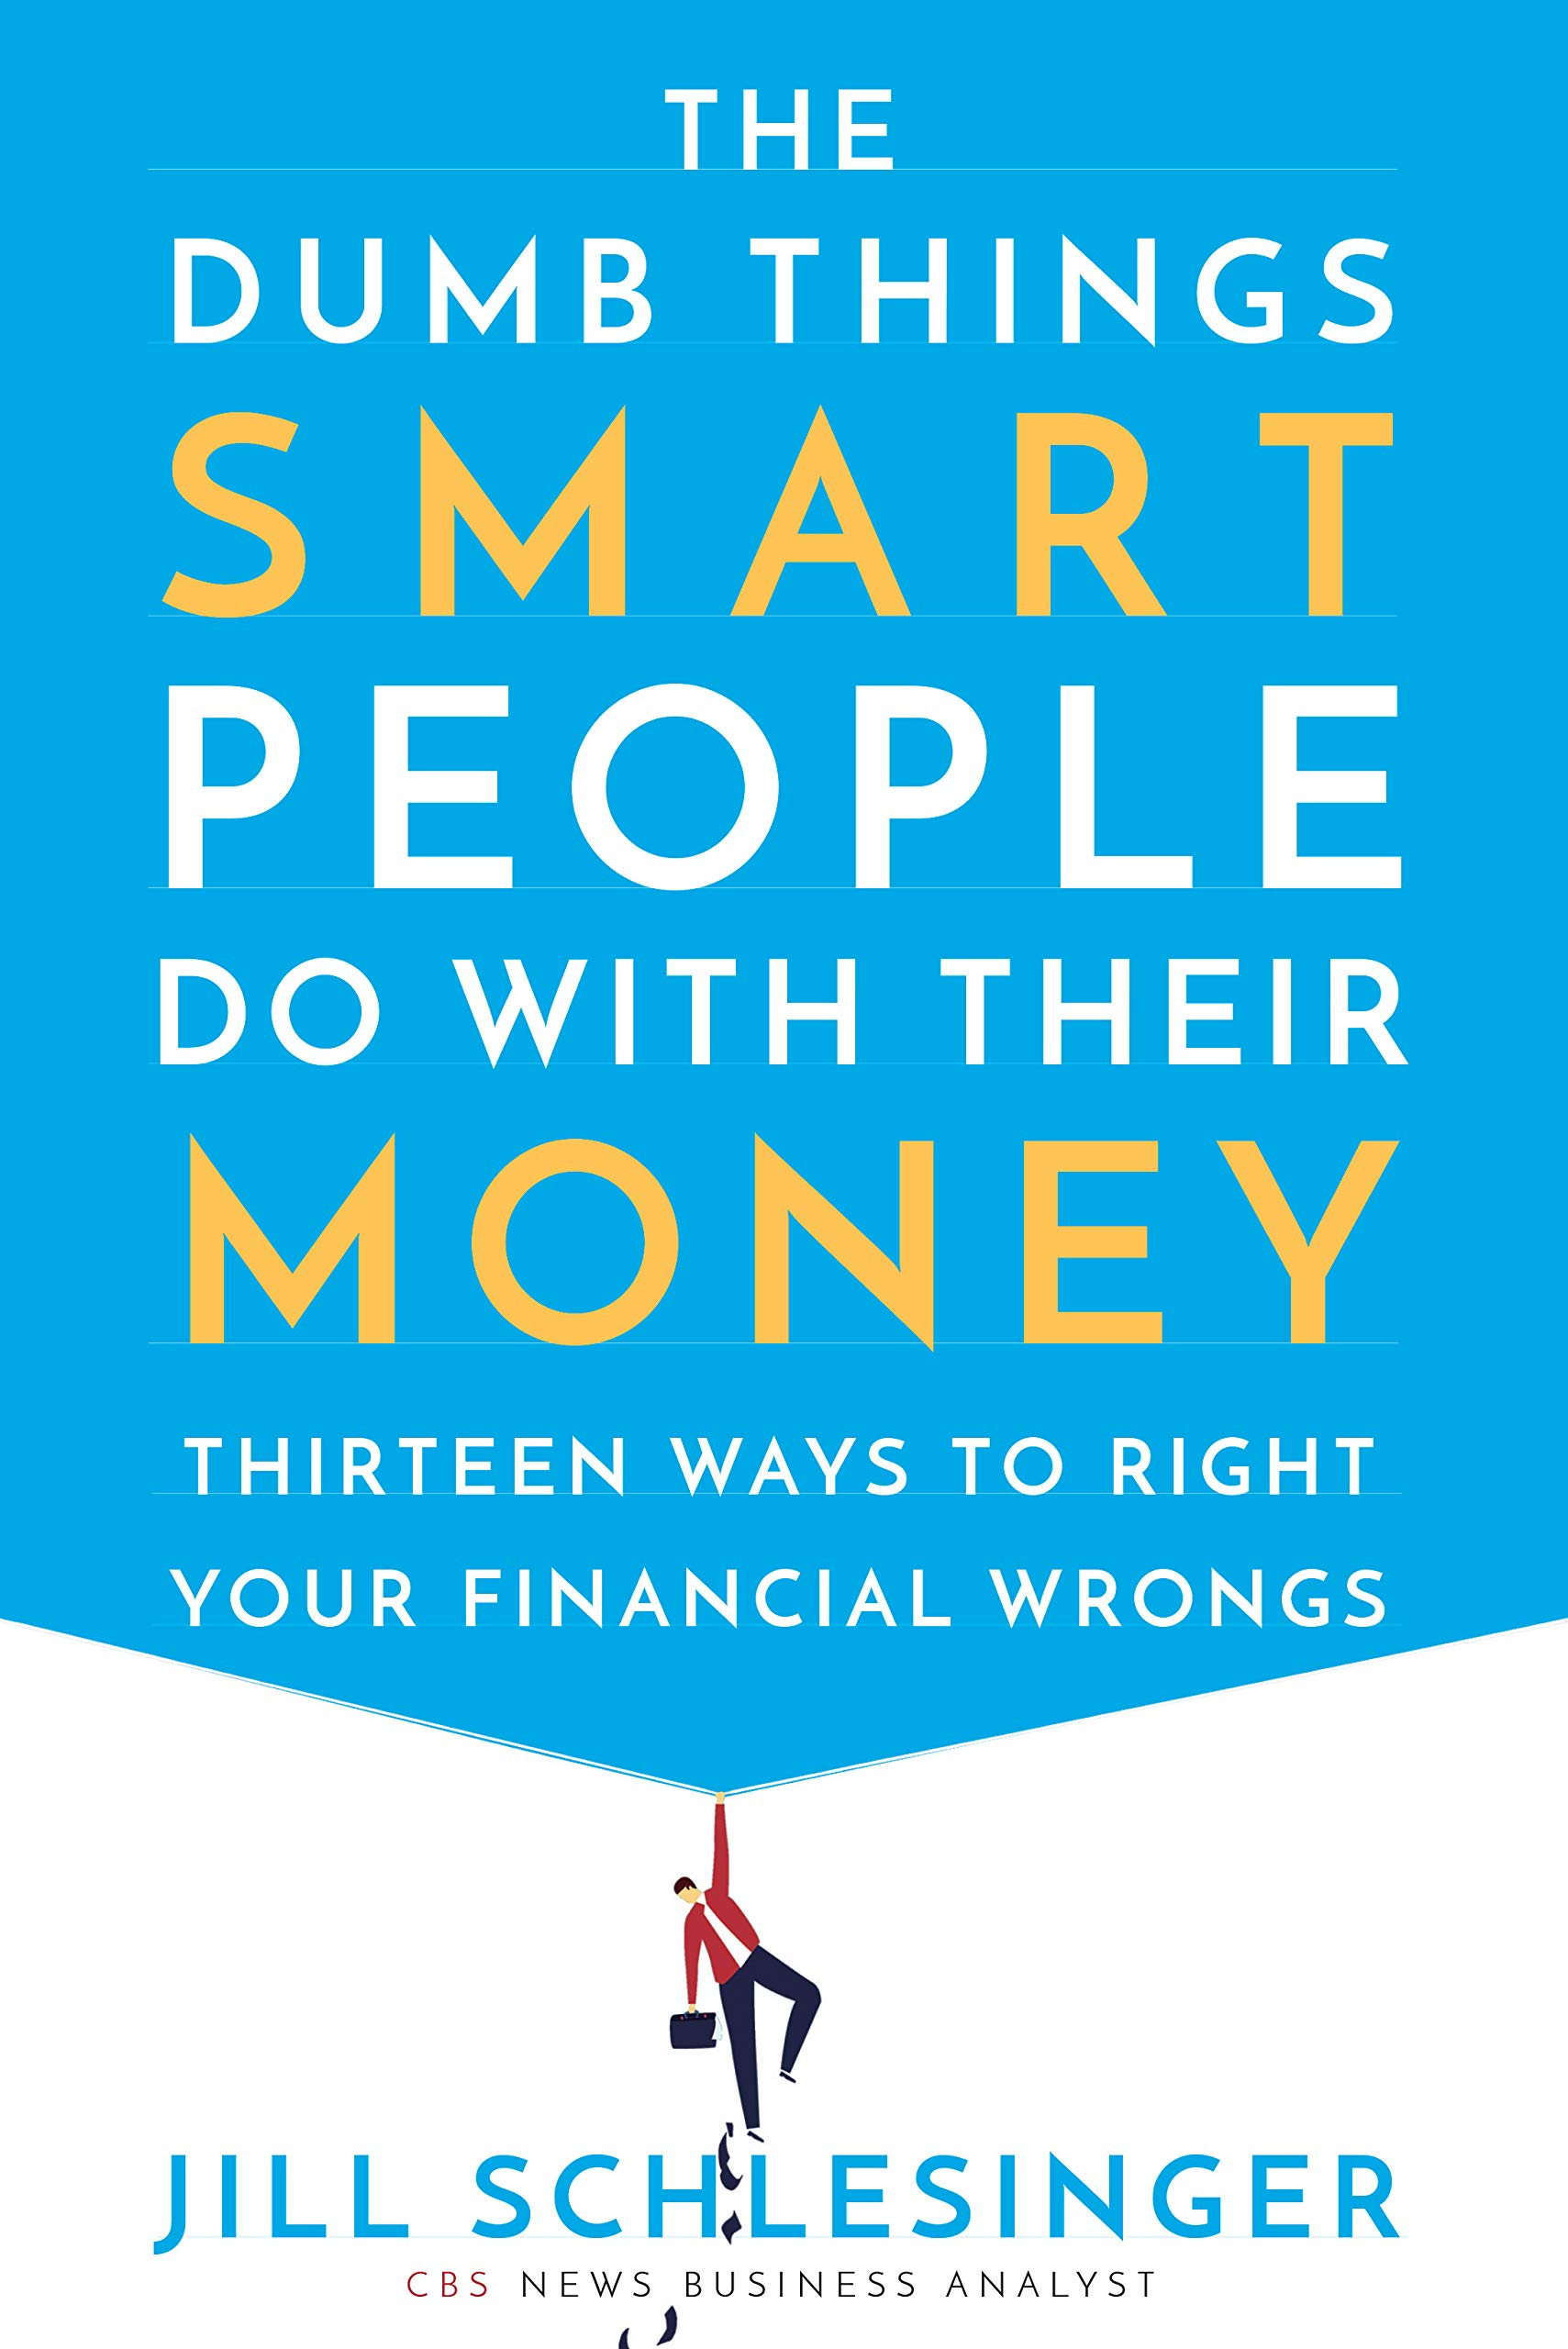 The Dumb Things Smart People Do with Their Money: Thirteen Ways to Right Your  Financial Wrongs: Jill Schlesinger: 9780525622178: Amazon.com: Books